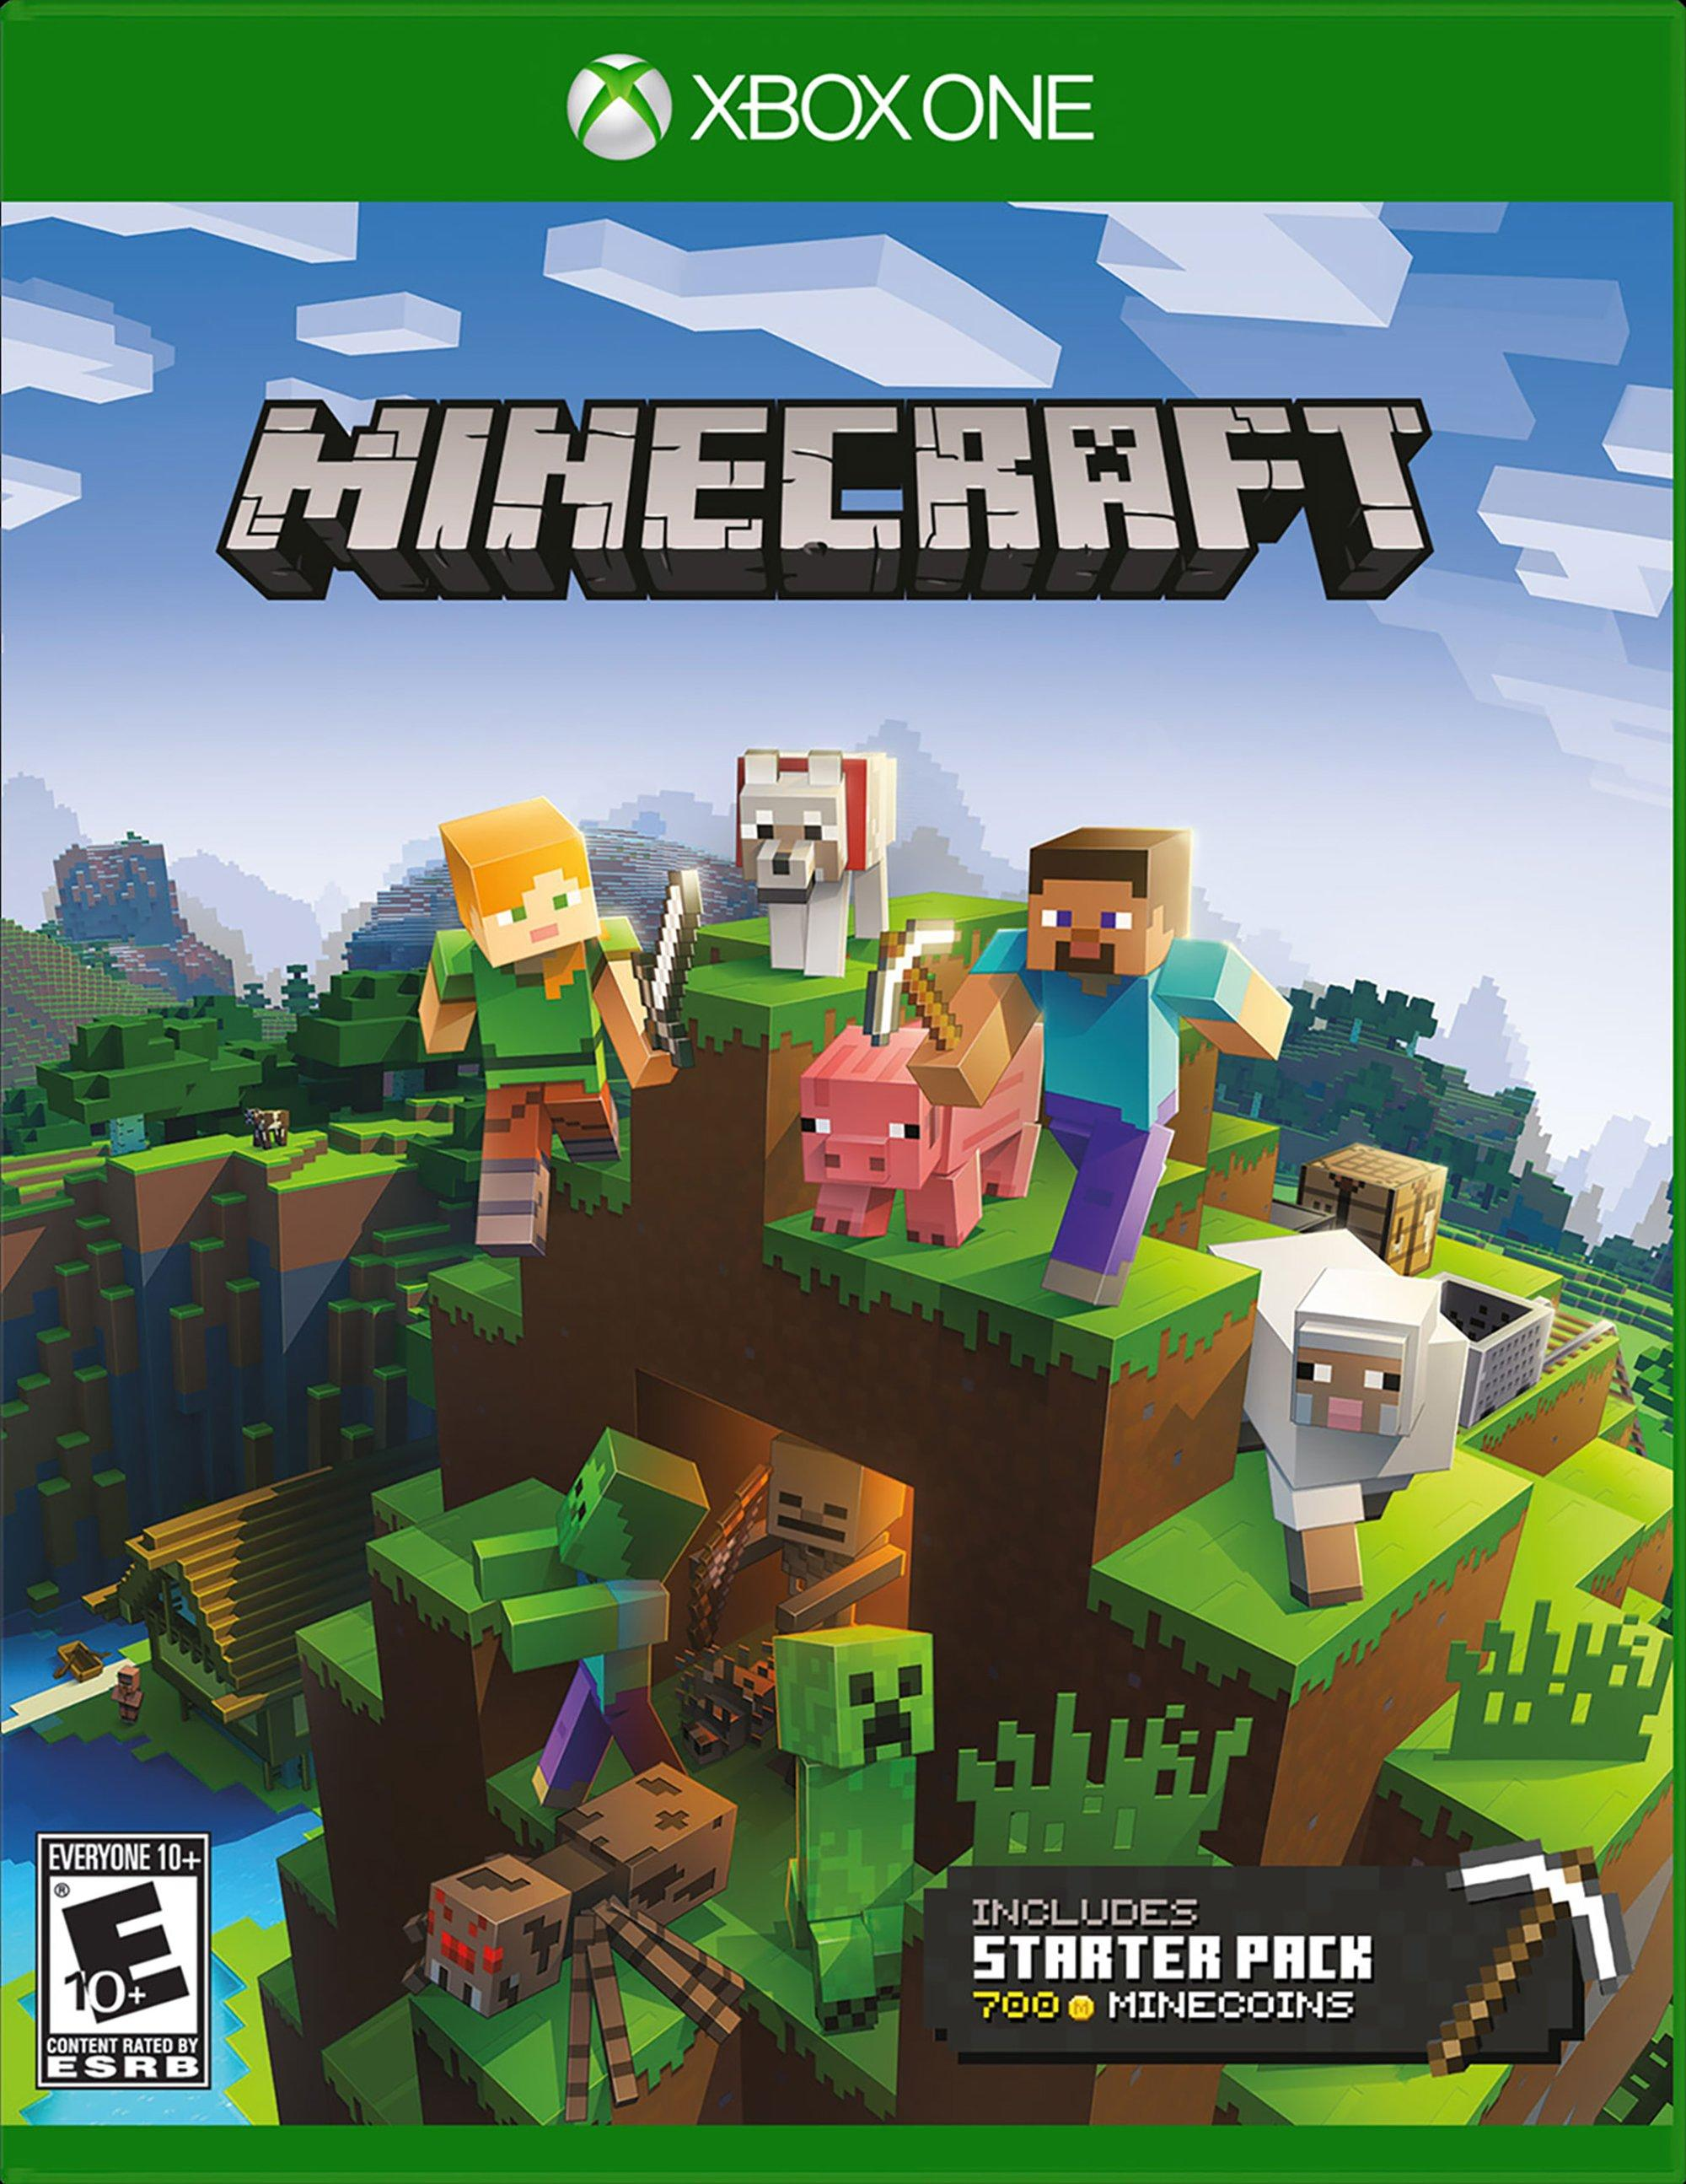 How To Get Minecraft Xbox One For 5 Dollars